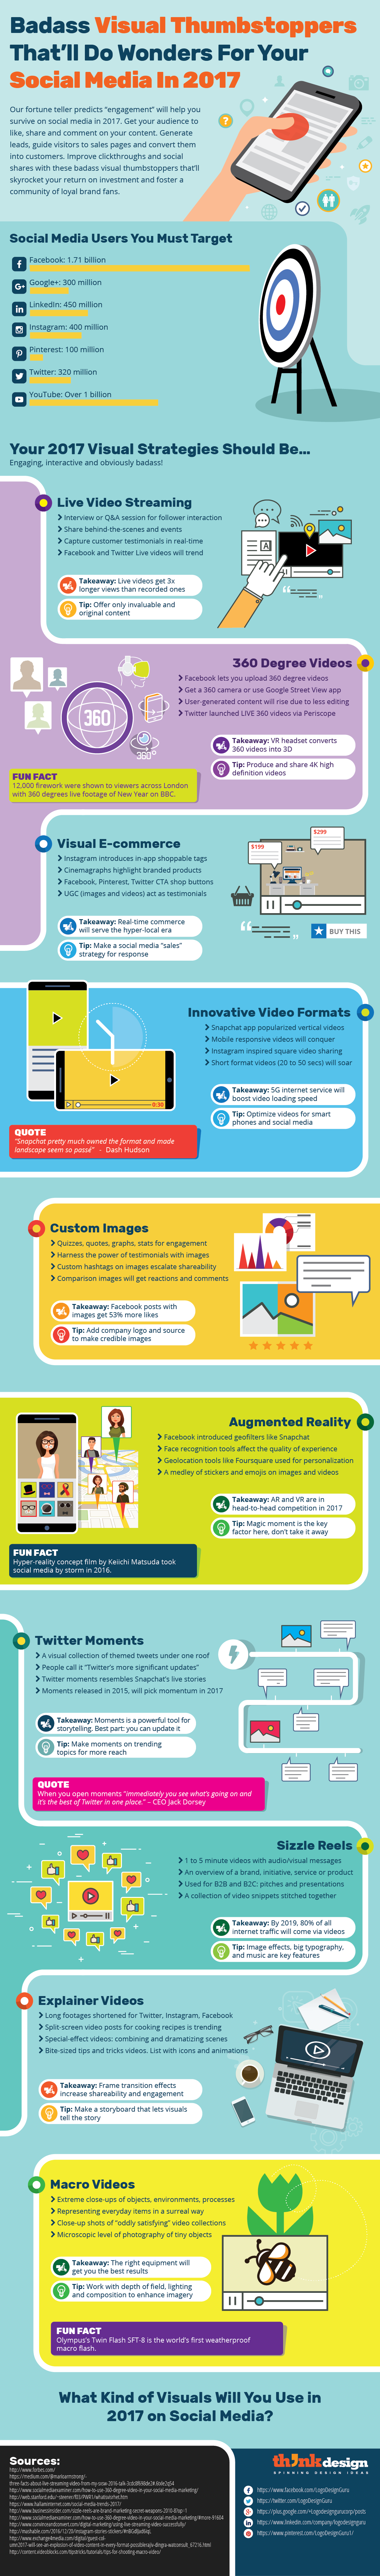 Visual Thumbstoppers for Your Social Media in 2017 [Infographic] | Social Media Today